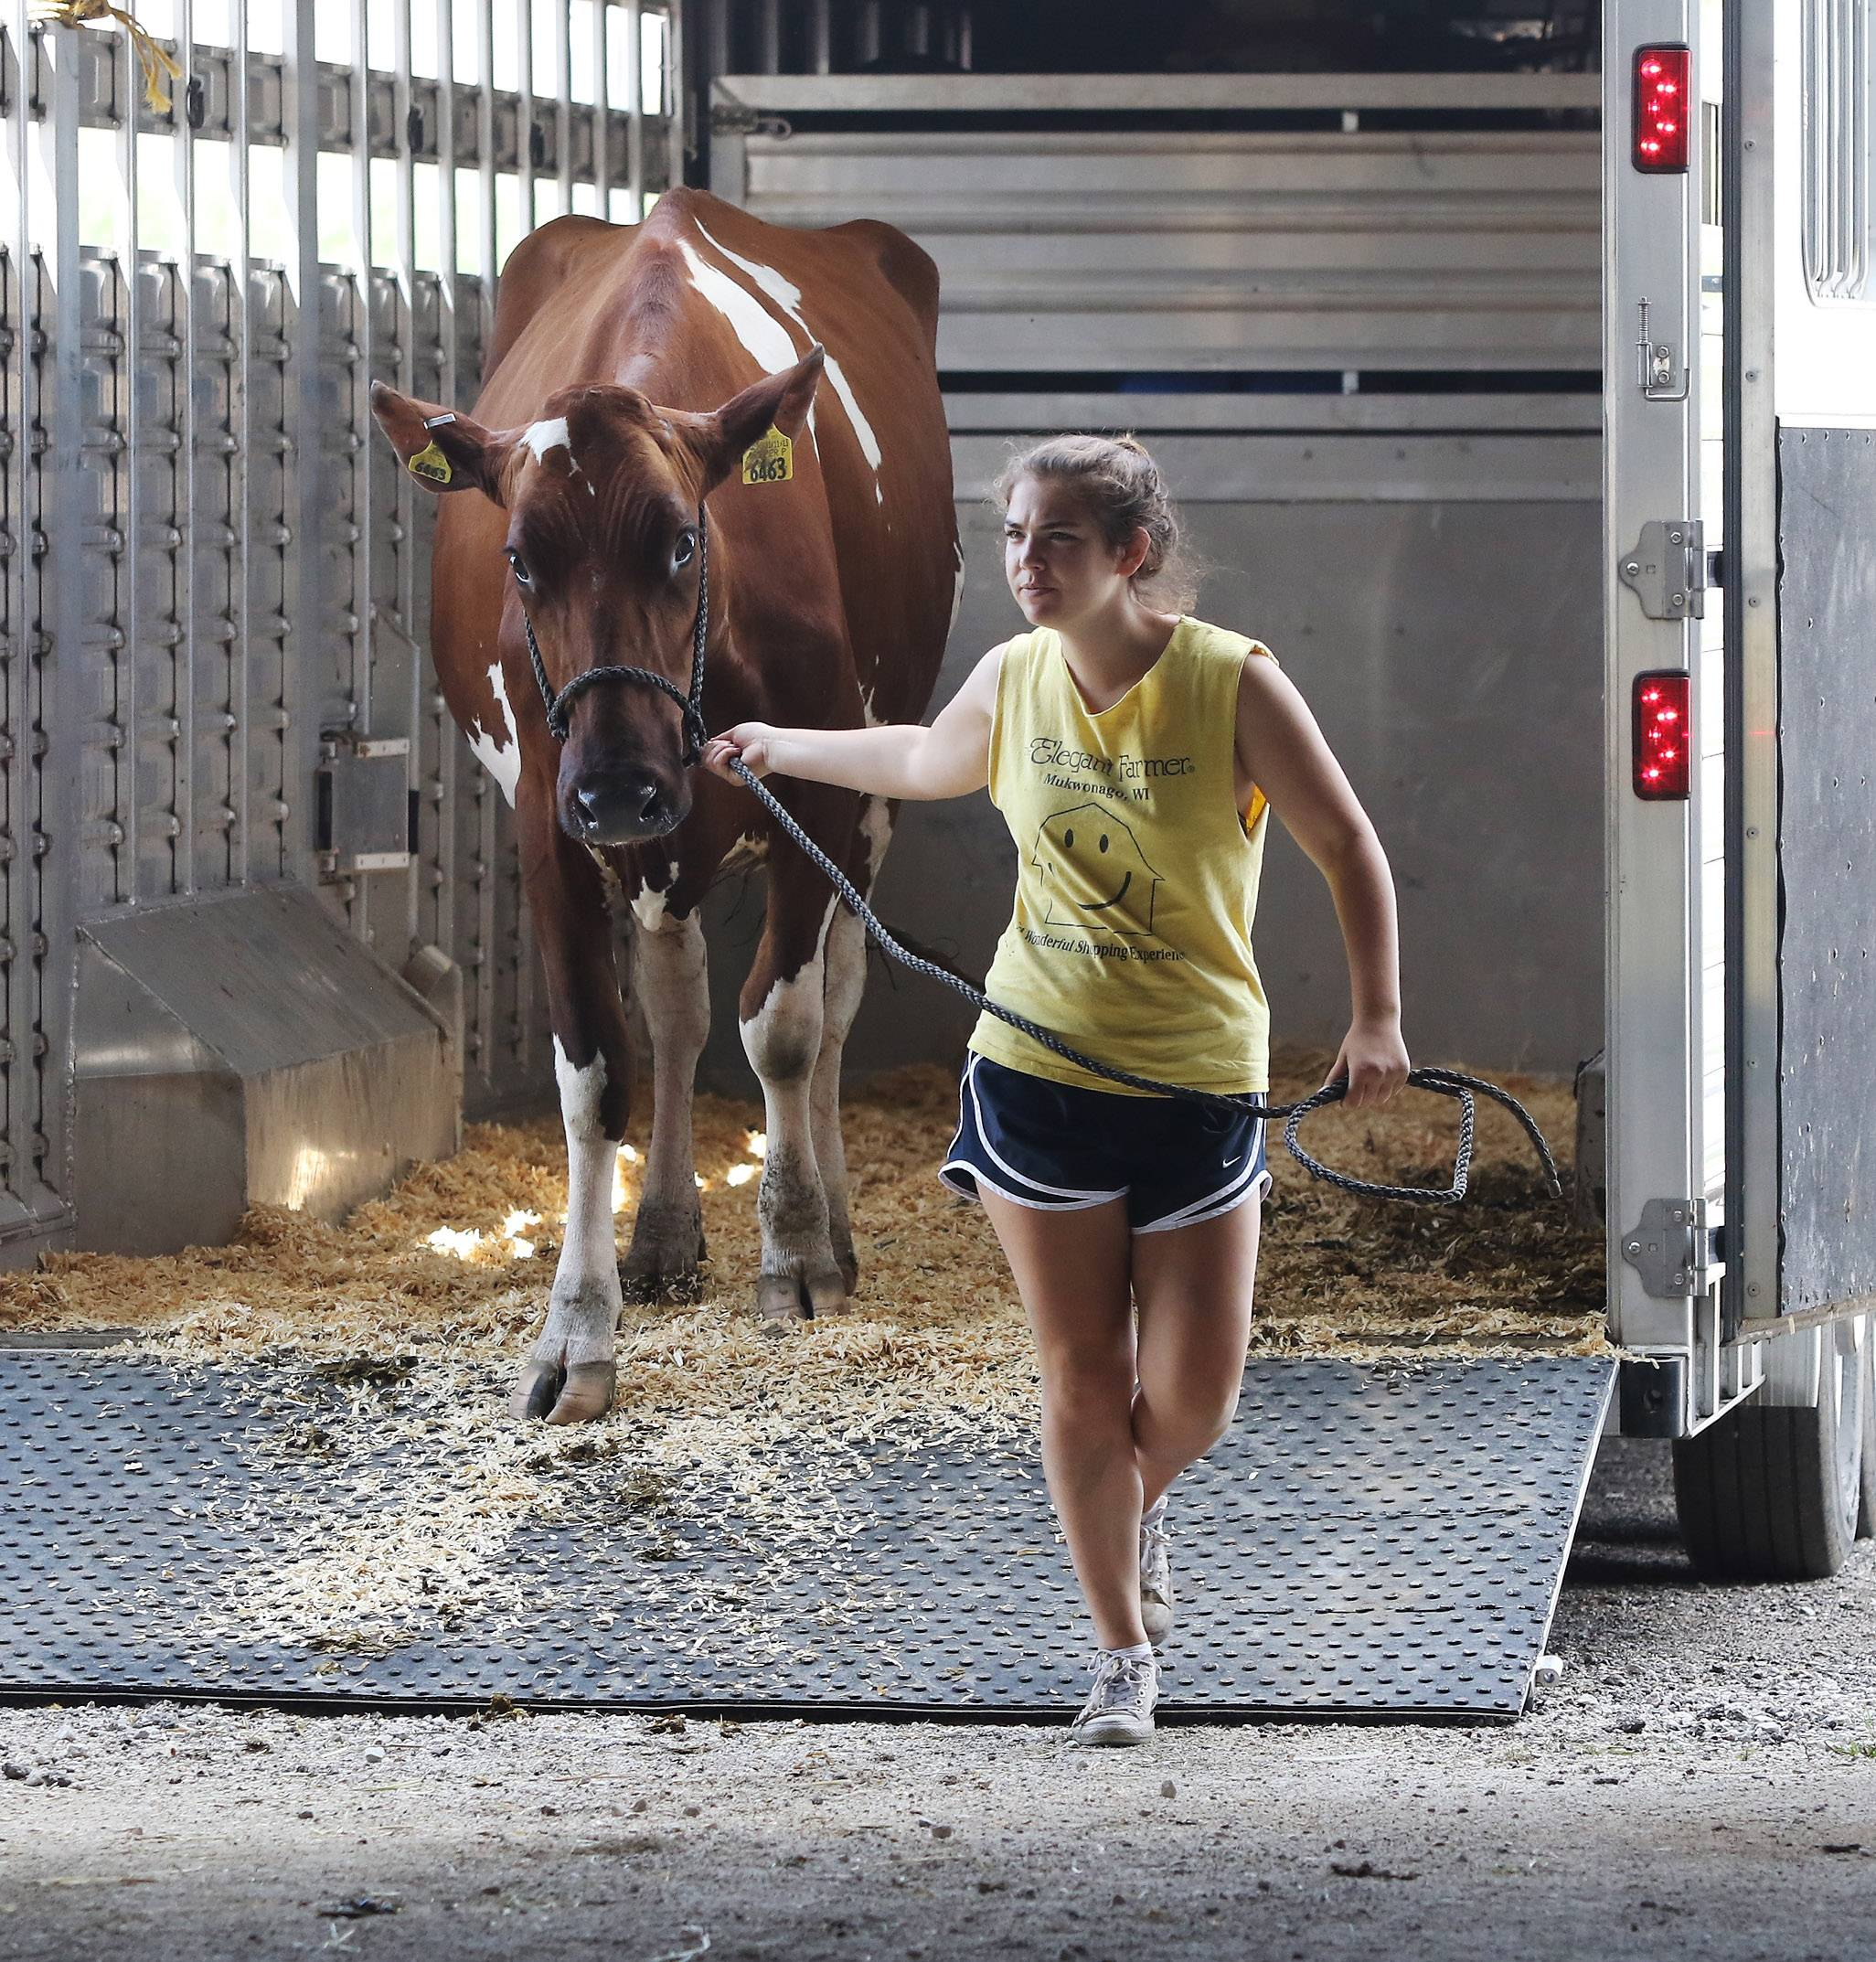 Lake County Fair prepares for opening